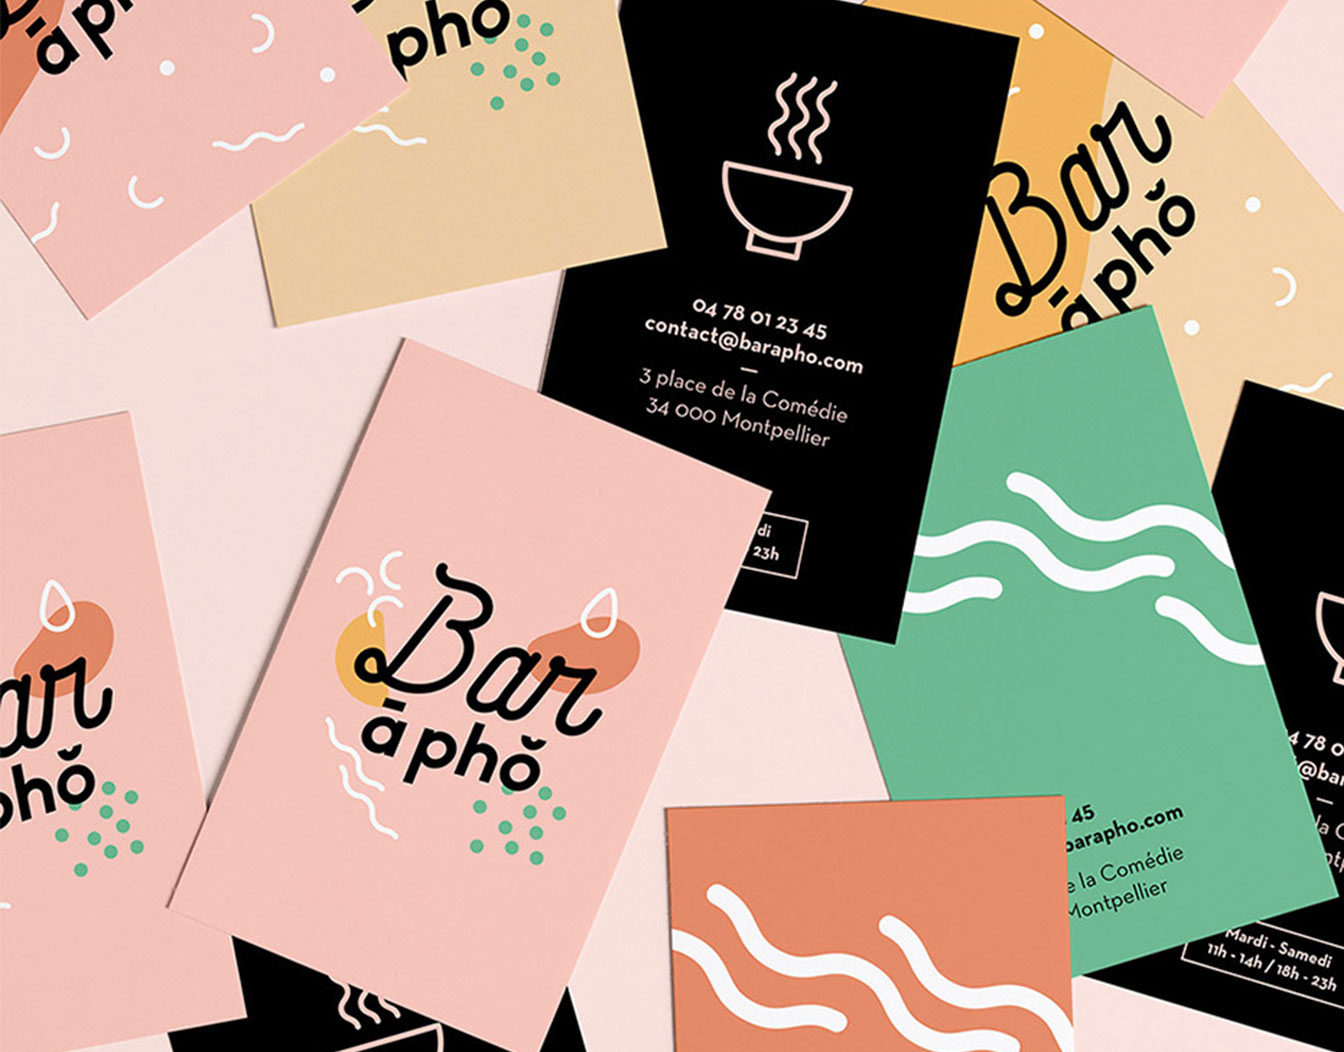 Sample business cards for Asian restaurant